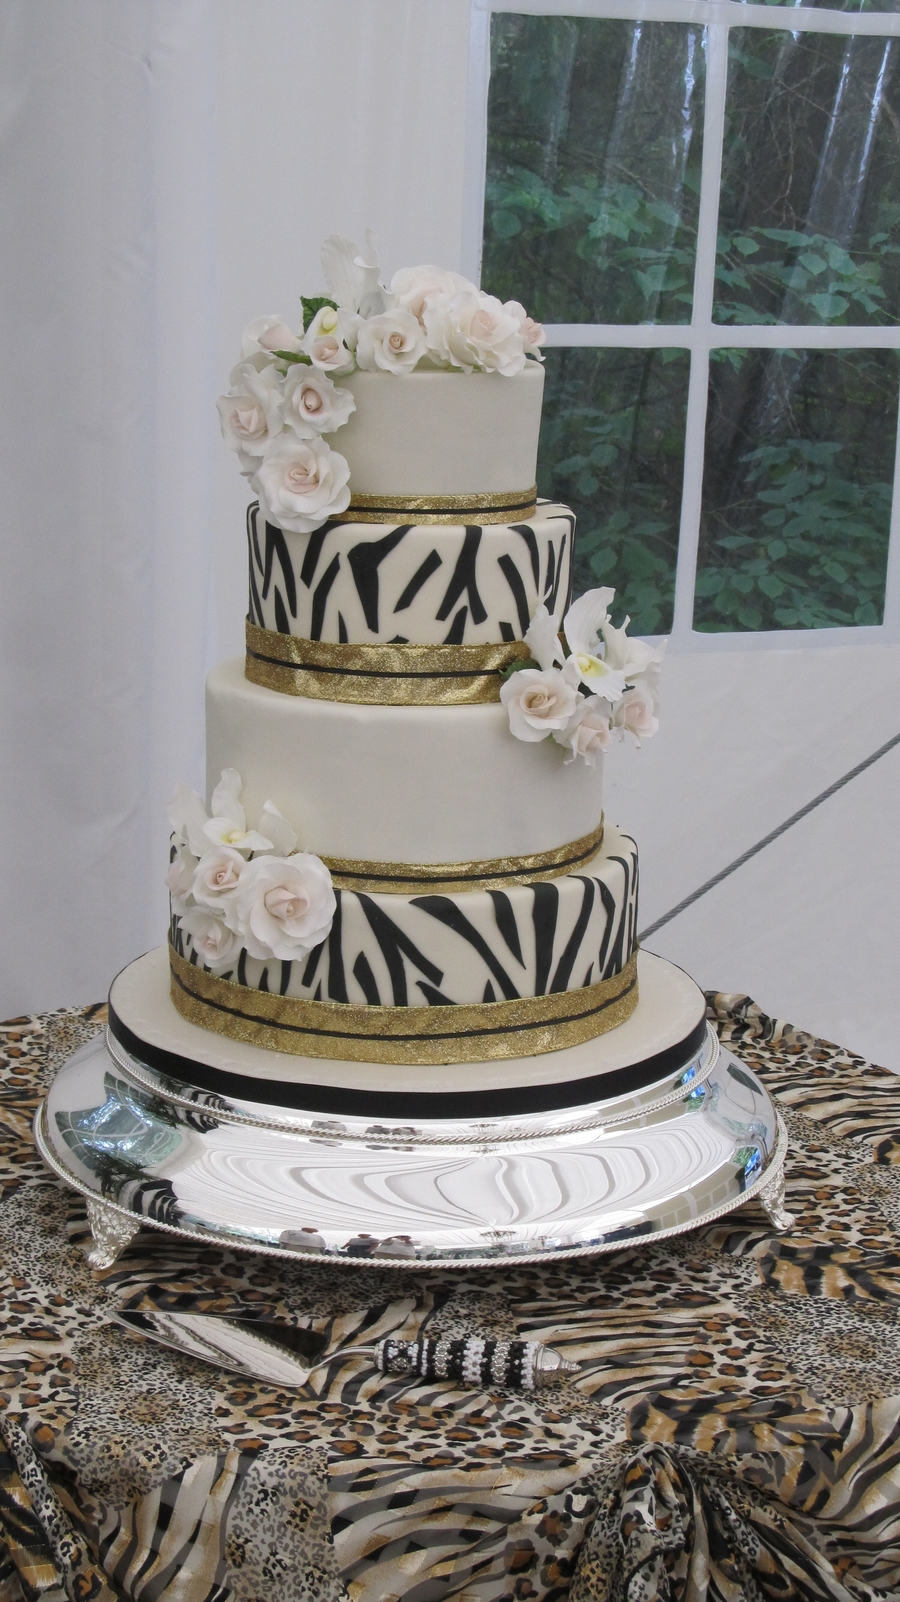 Kate's African Theme Wedding Cake on Cake Central